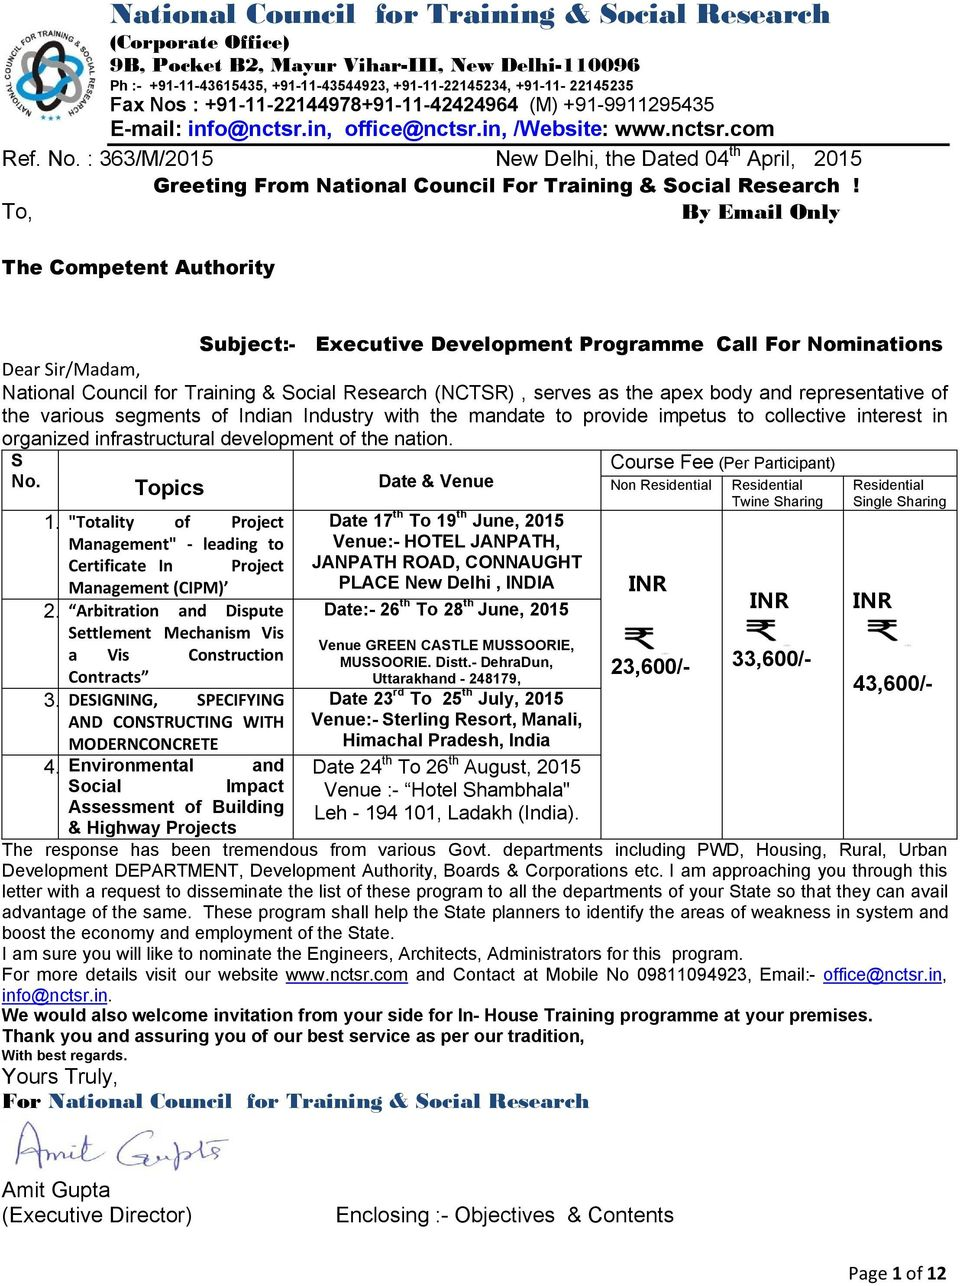 Greeting From National Council For Training Social Research By